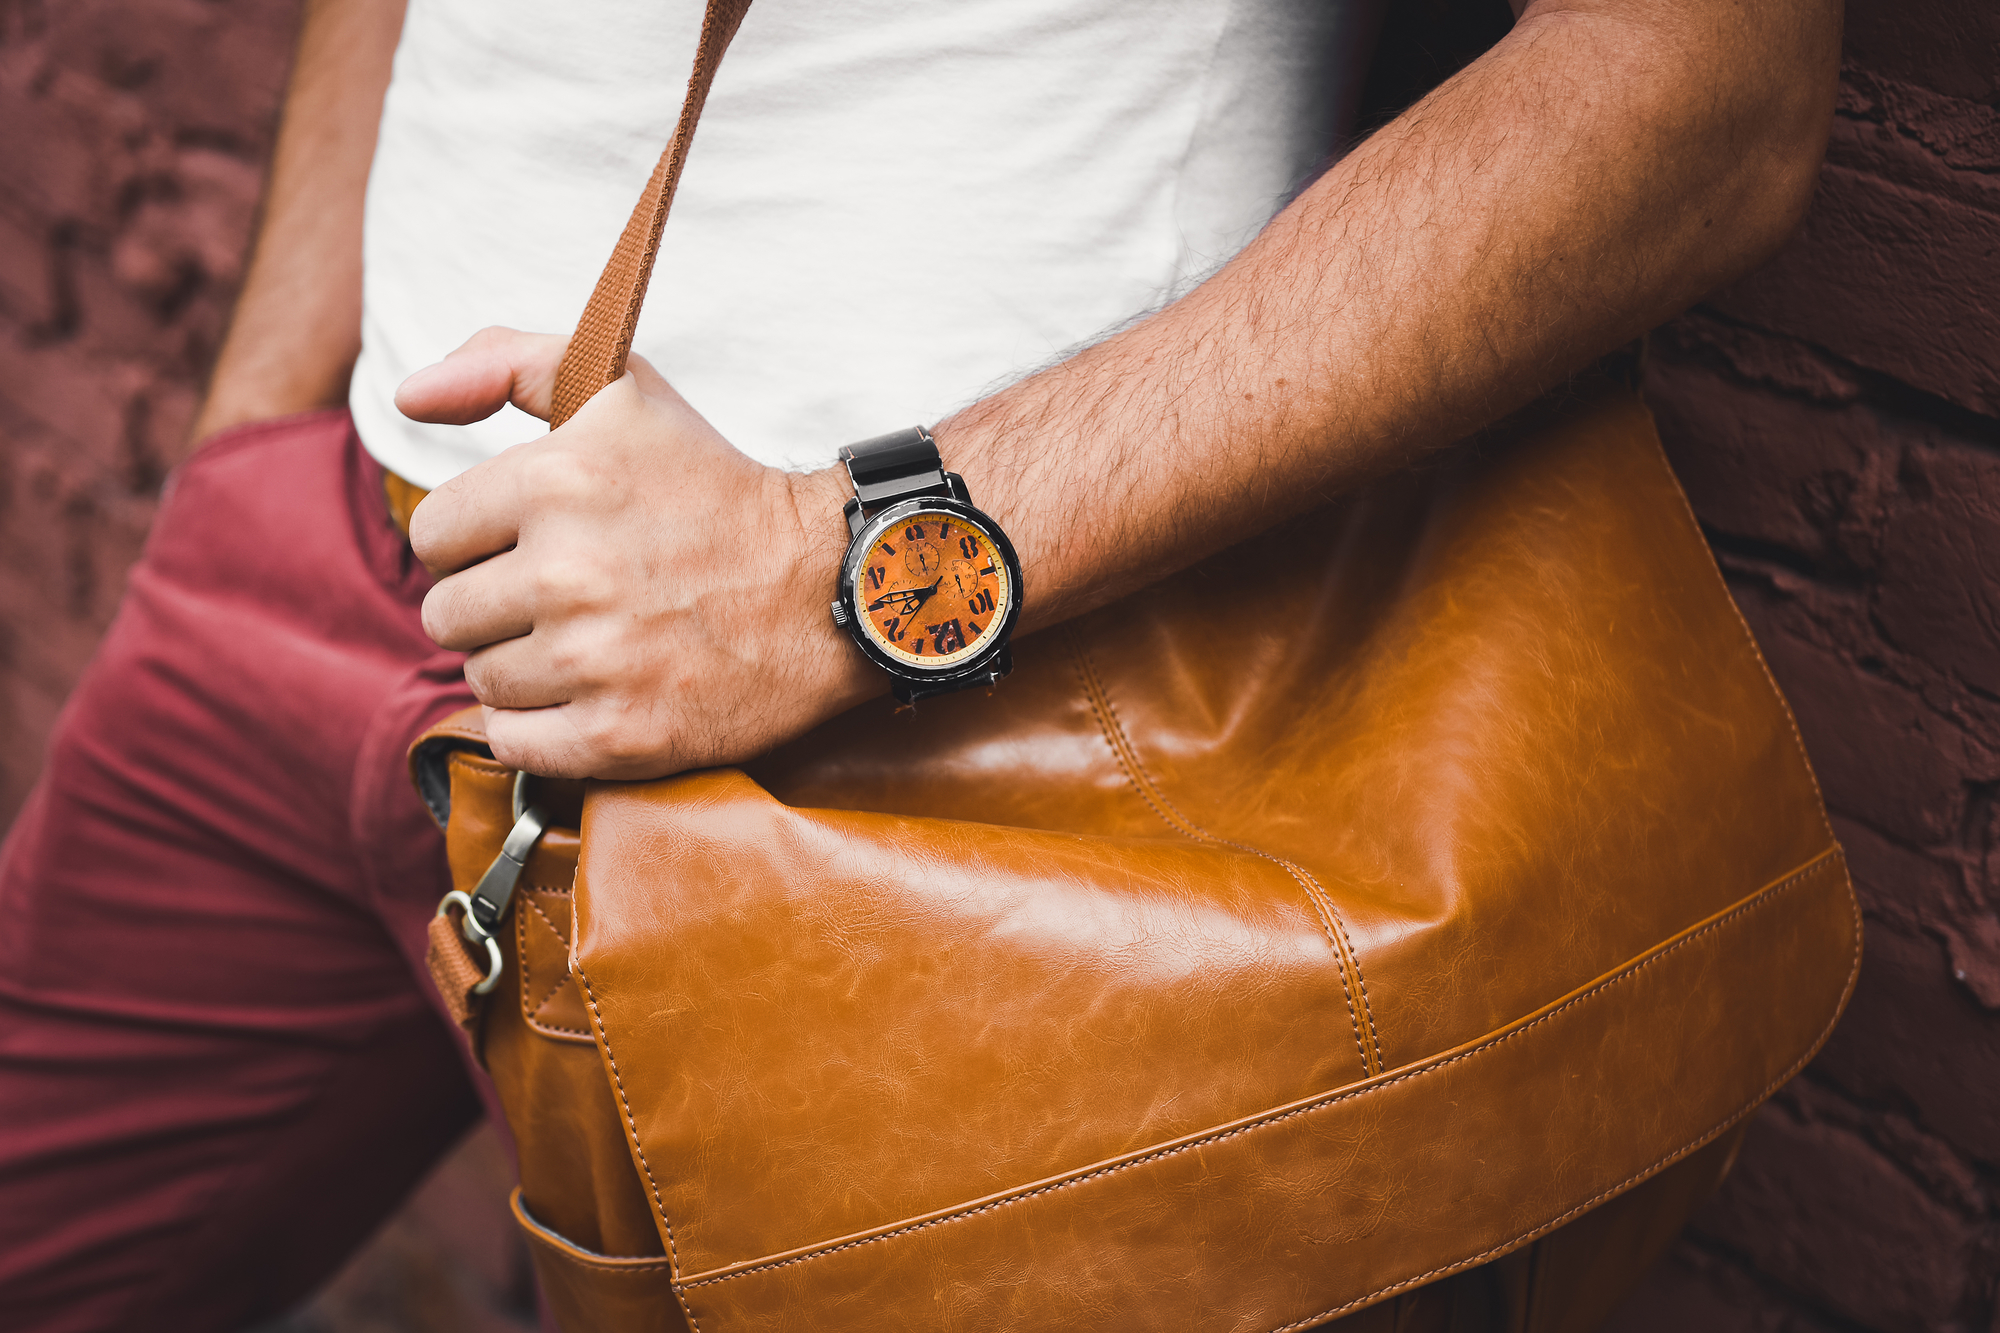 Men Bags that Never Went Out of Style